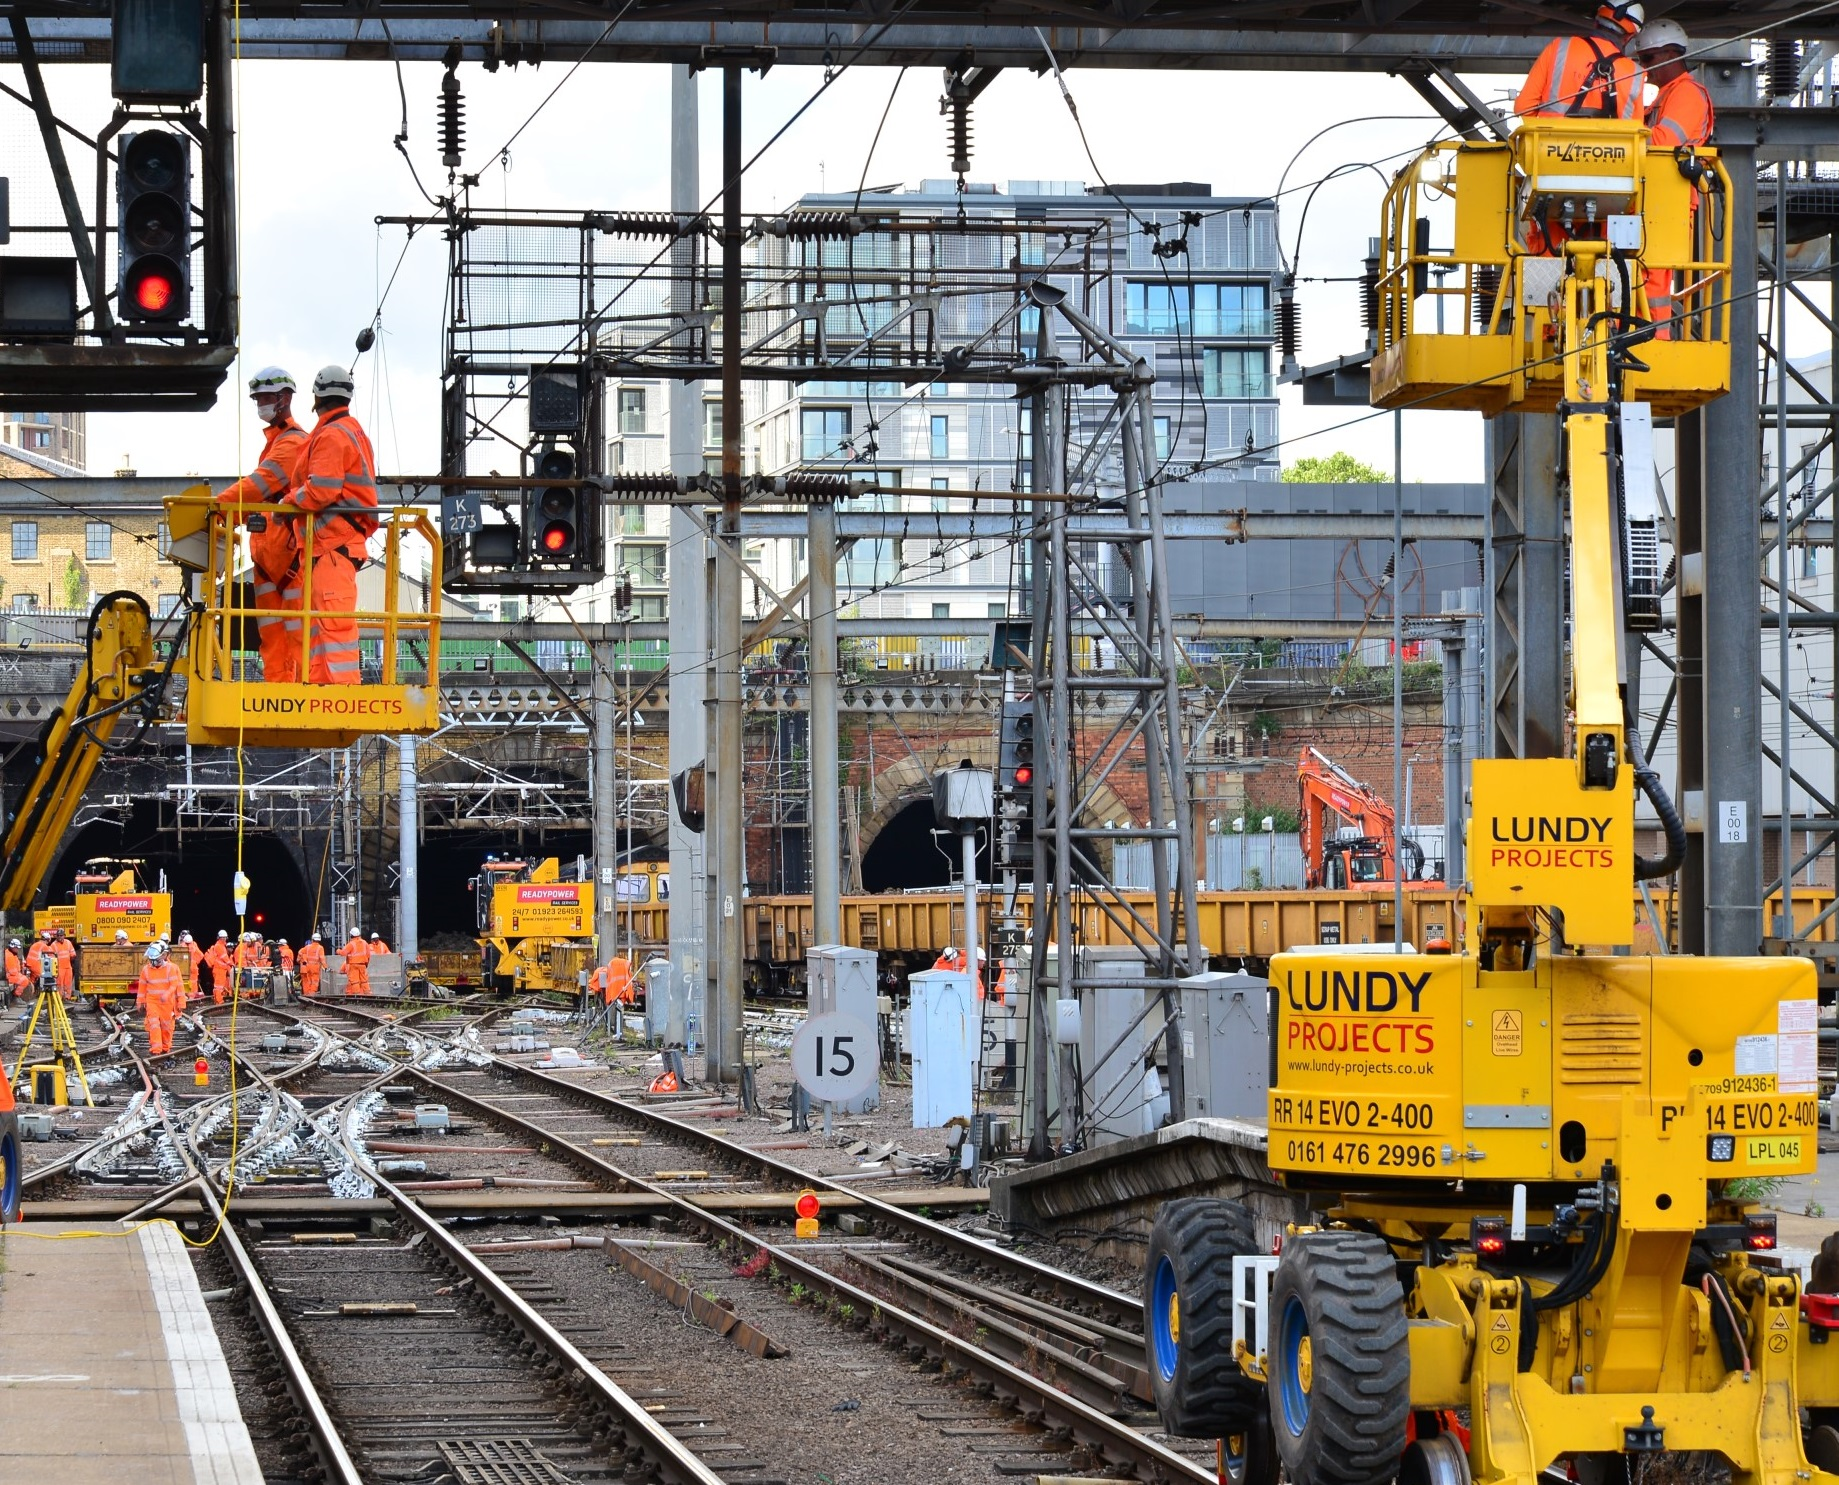 Network Rail to begin works at London King's Cross station as part of the 1.2 billion GBP East Coast Main Line